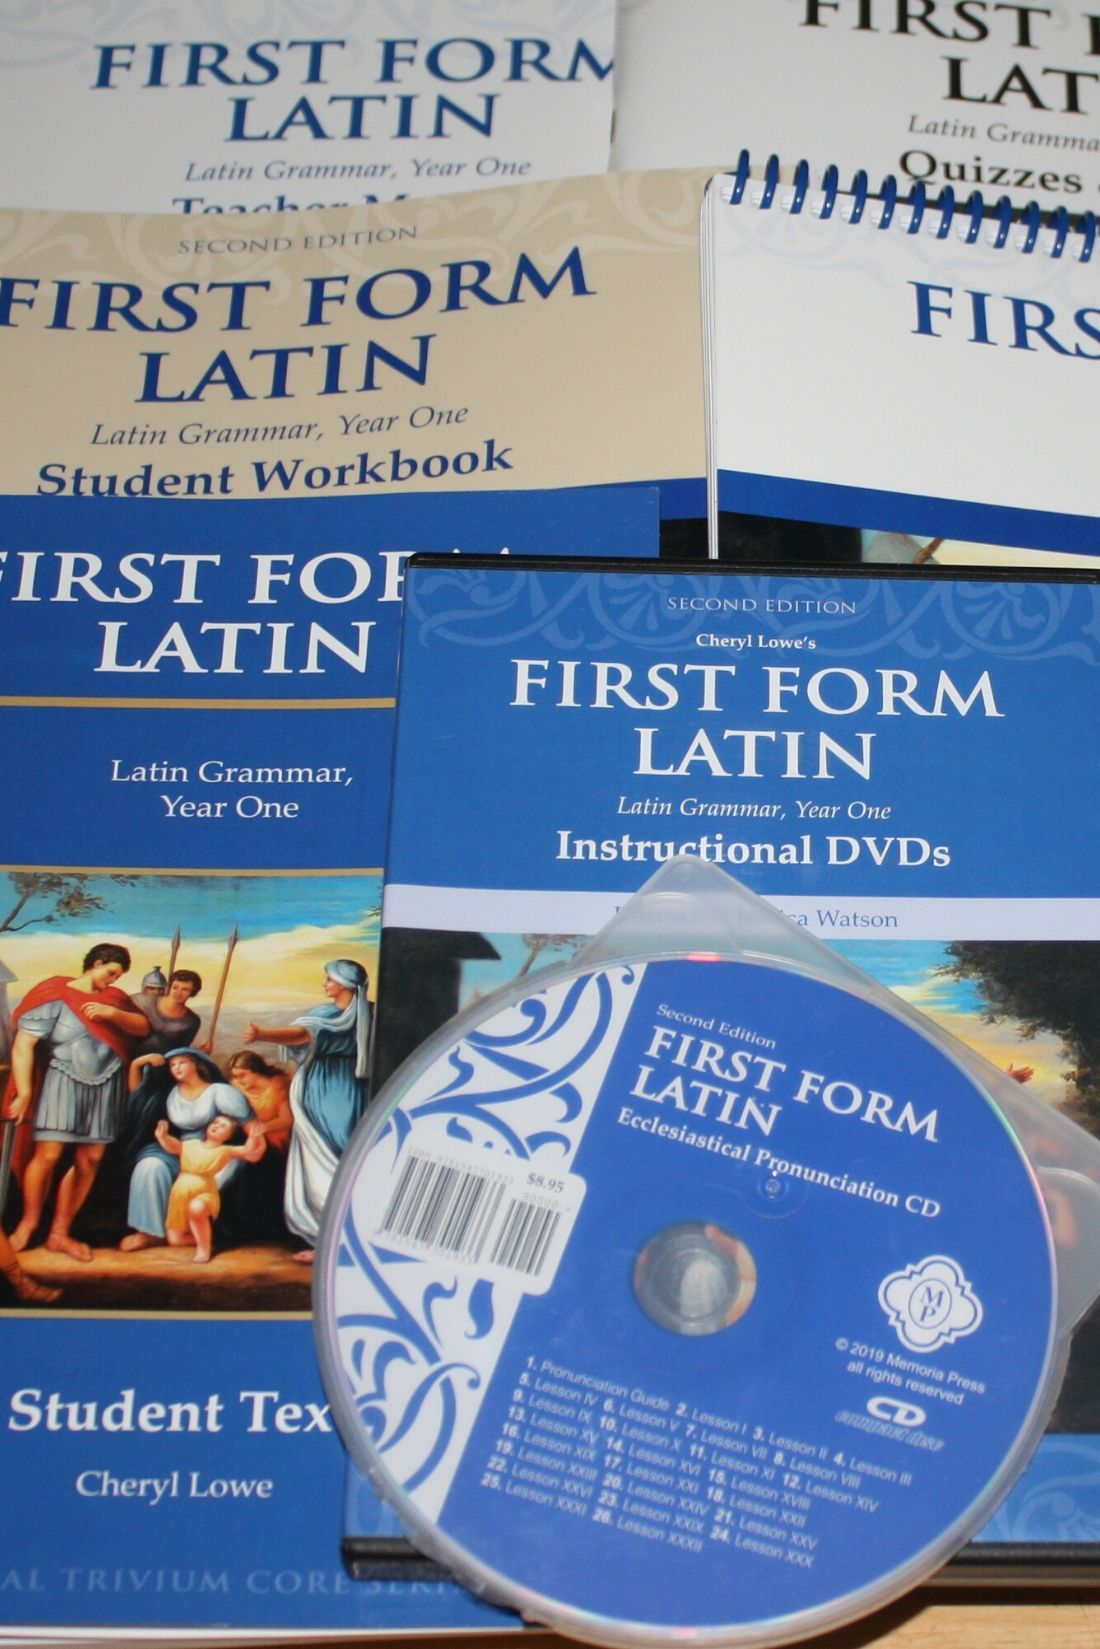 First Form Latin Complete Set From Memoria Press Helps